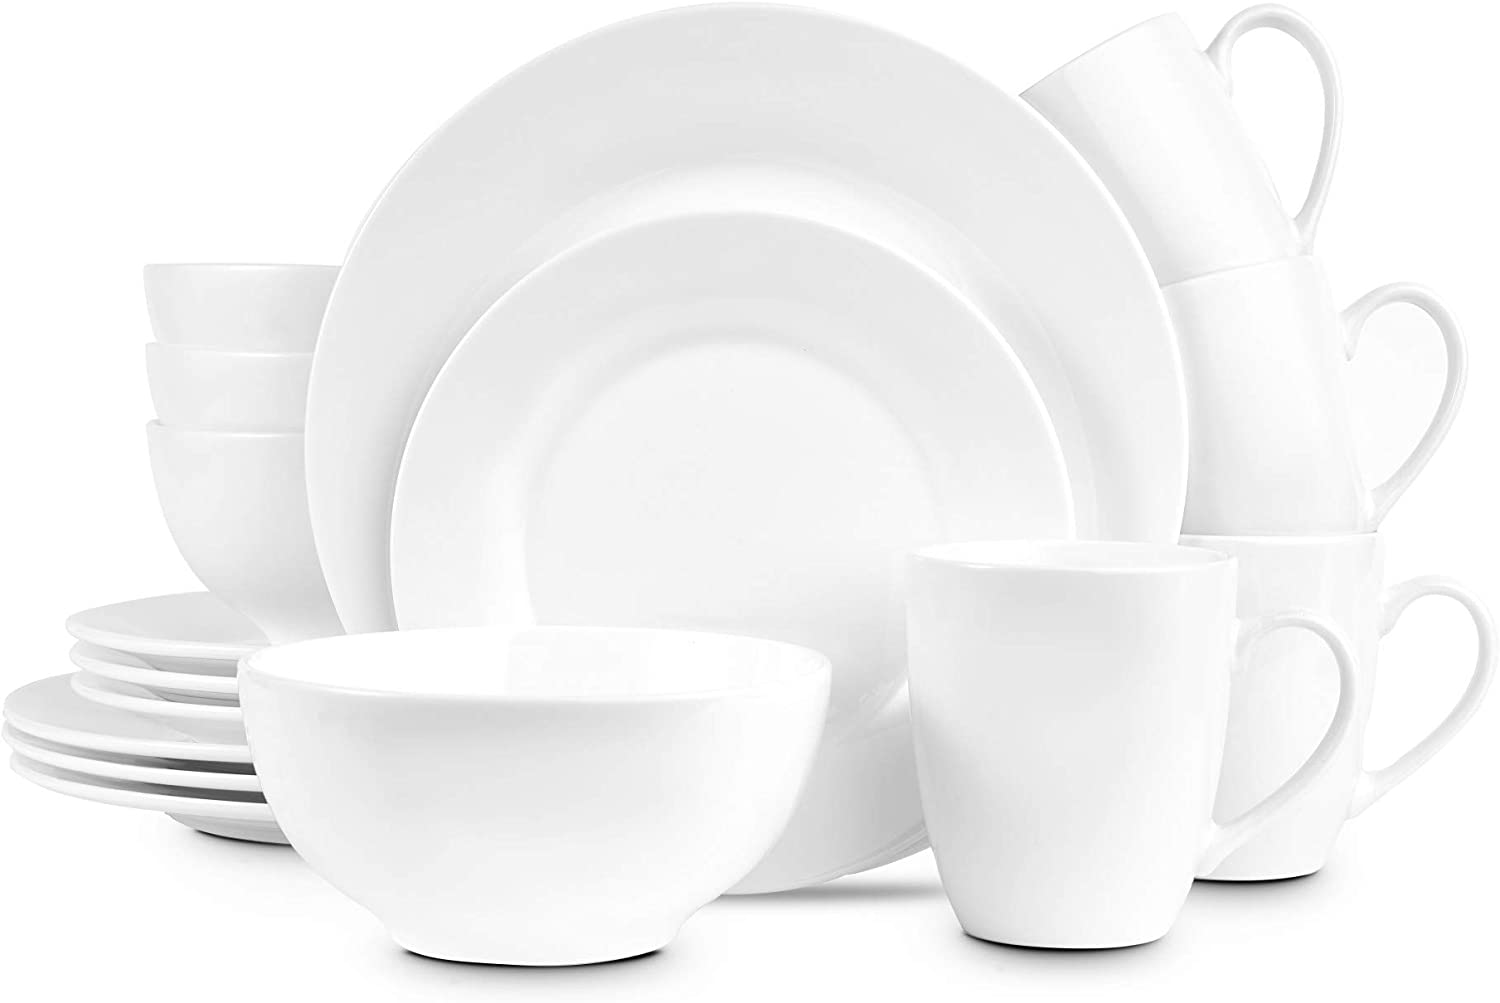 Stone lain Evermore Porcelain White Body Round Dinnerware Set, 16 Pieces Service for 4